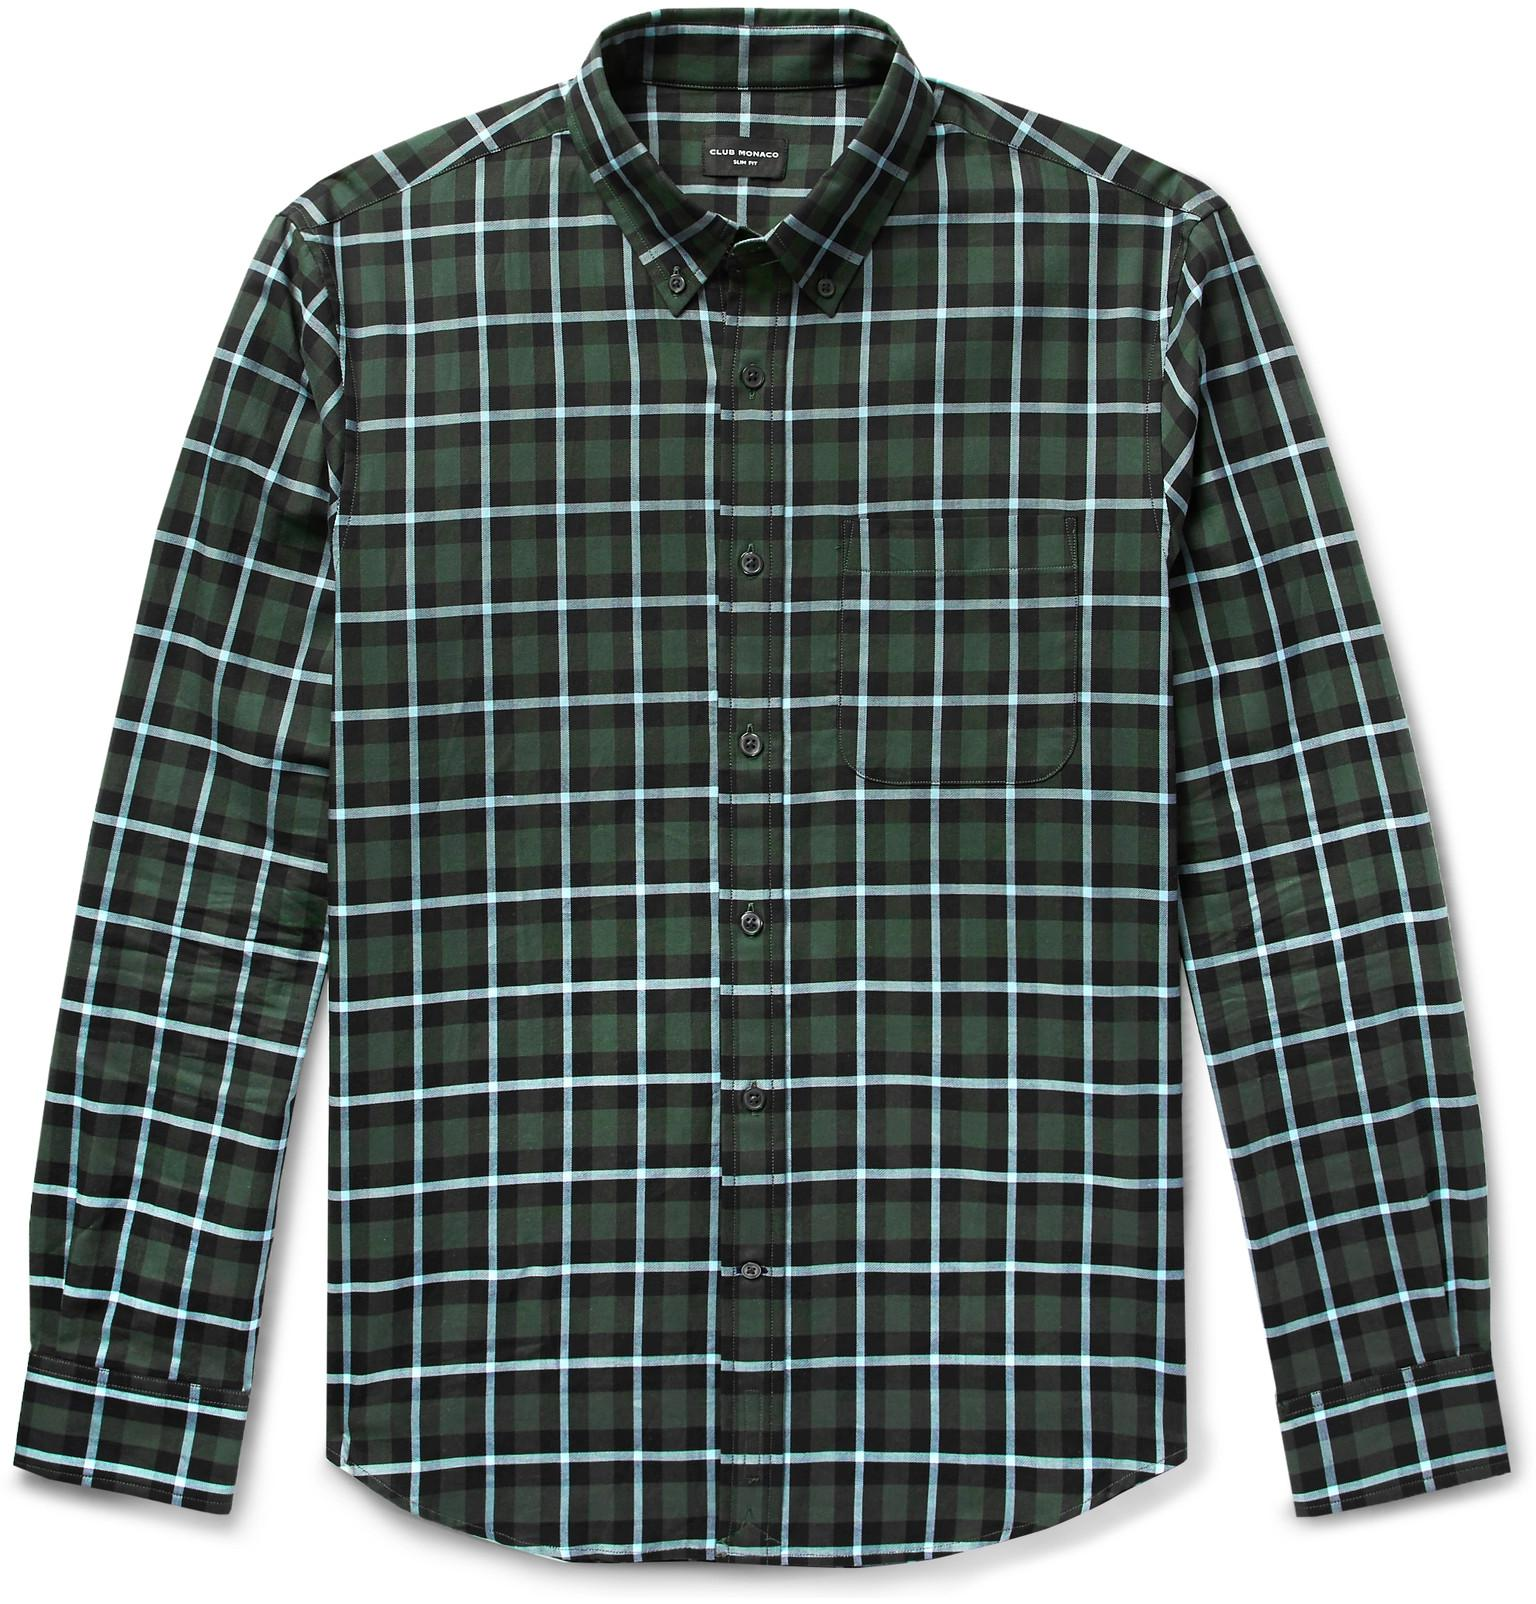 e785ab11e81 Club Monaco - Green Slim-fit Button-down Collar Checked Cotton Shirt for  Men. View fullscreen